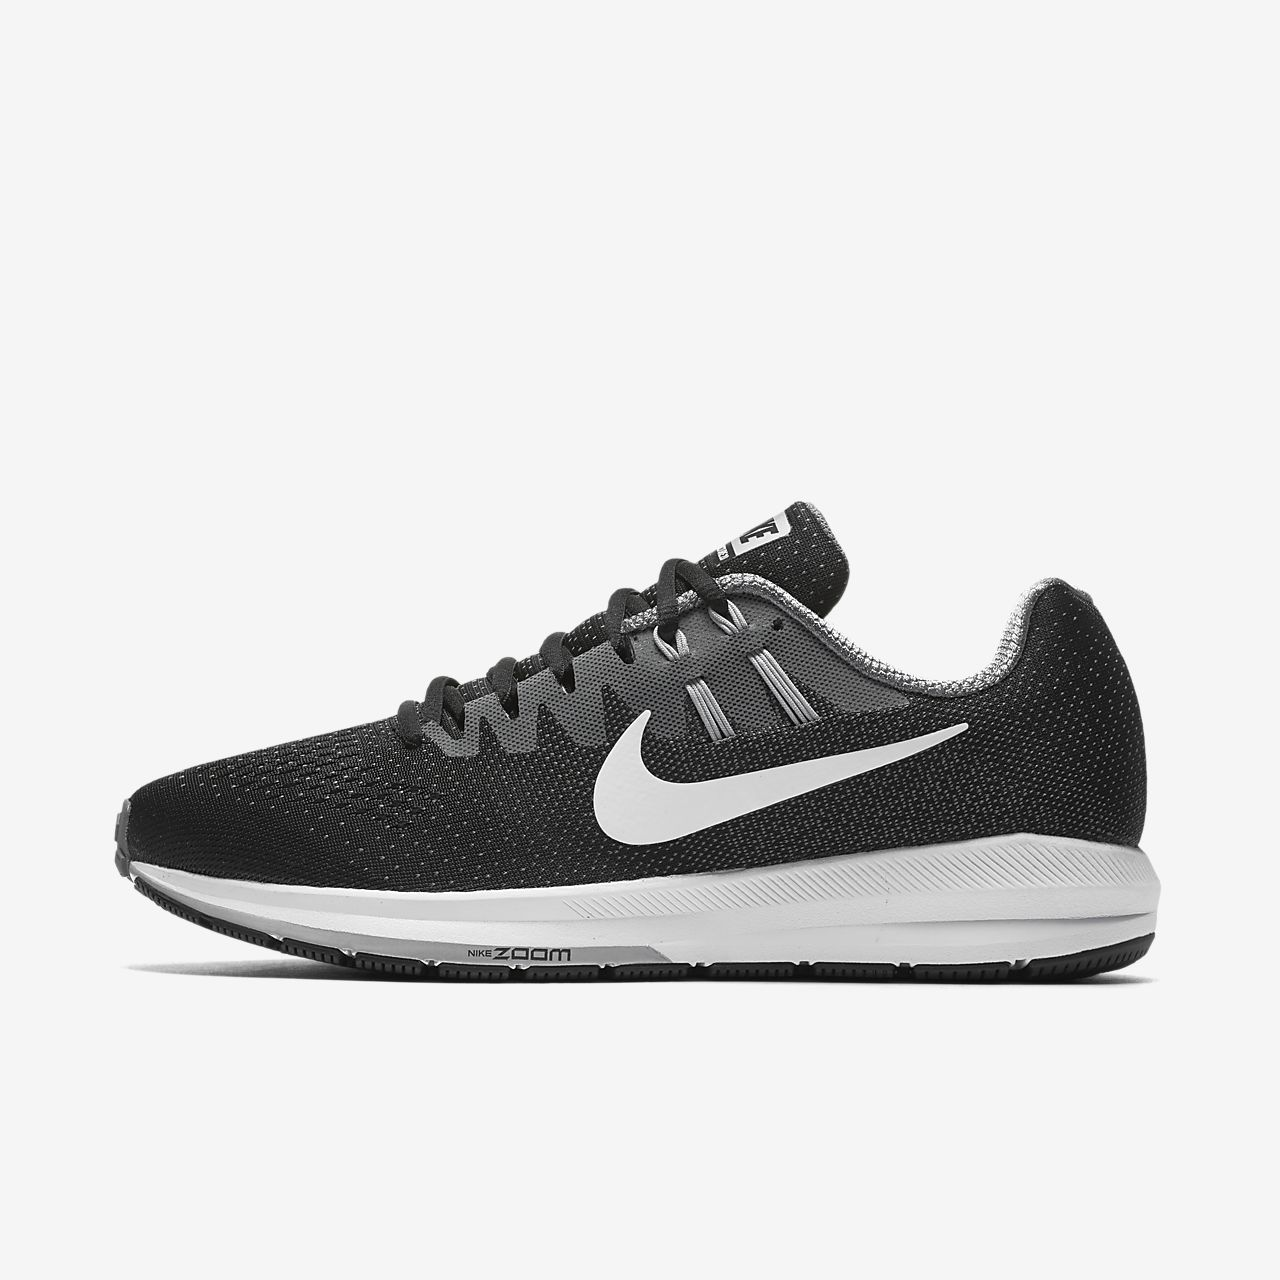 NIKE MEN AIR ZOOM STRUCTURE 20 RUNNING SHOE BLACK 849576-005'